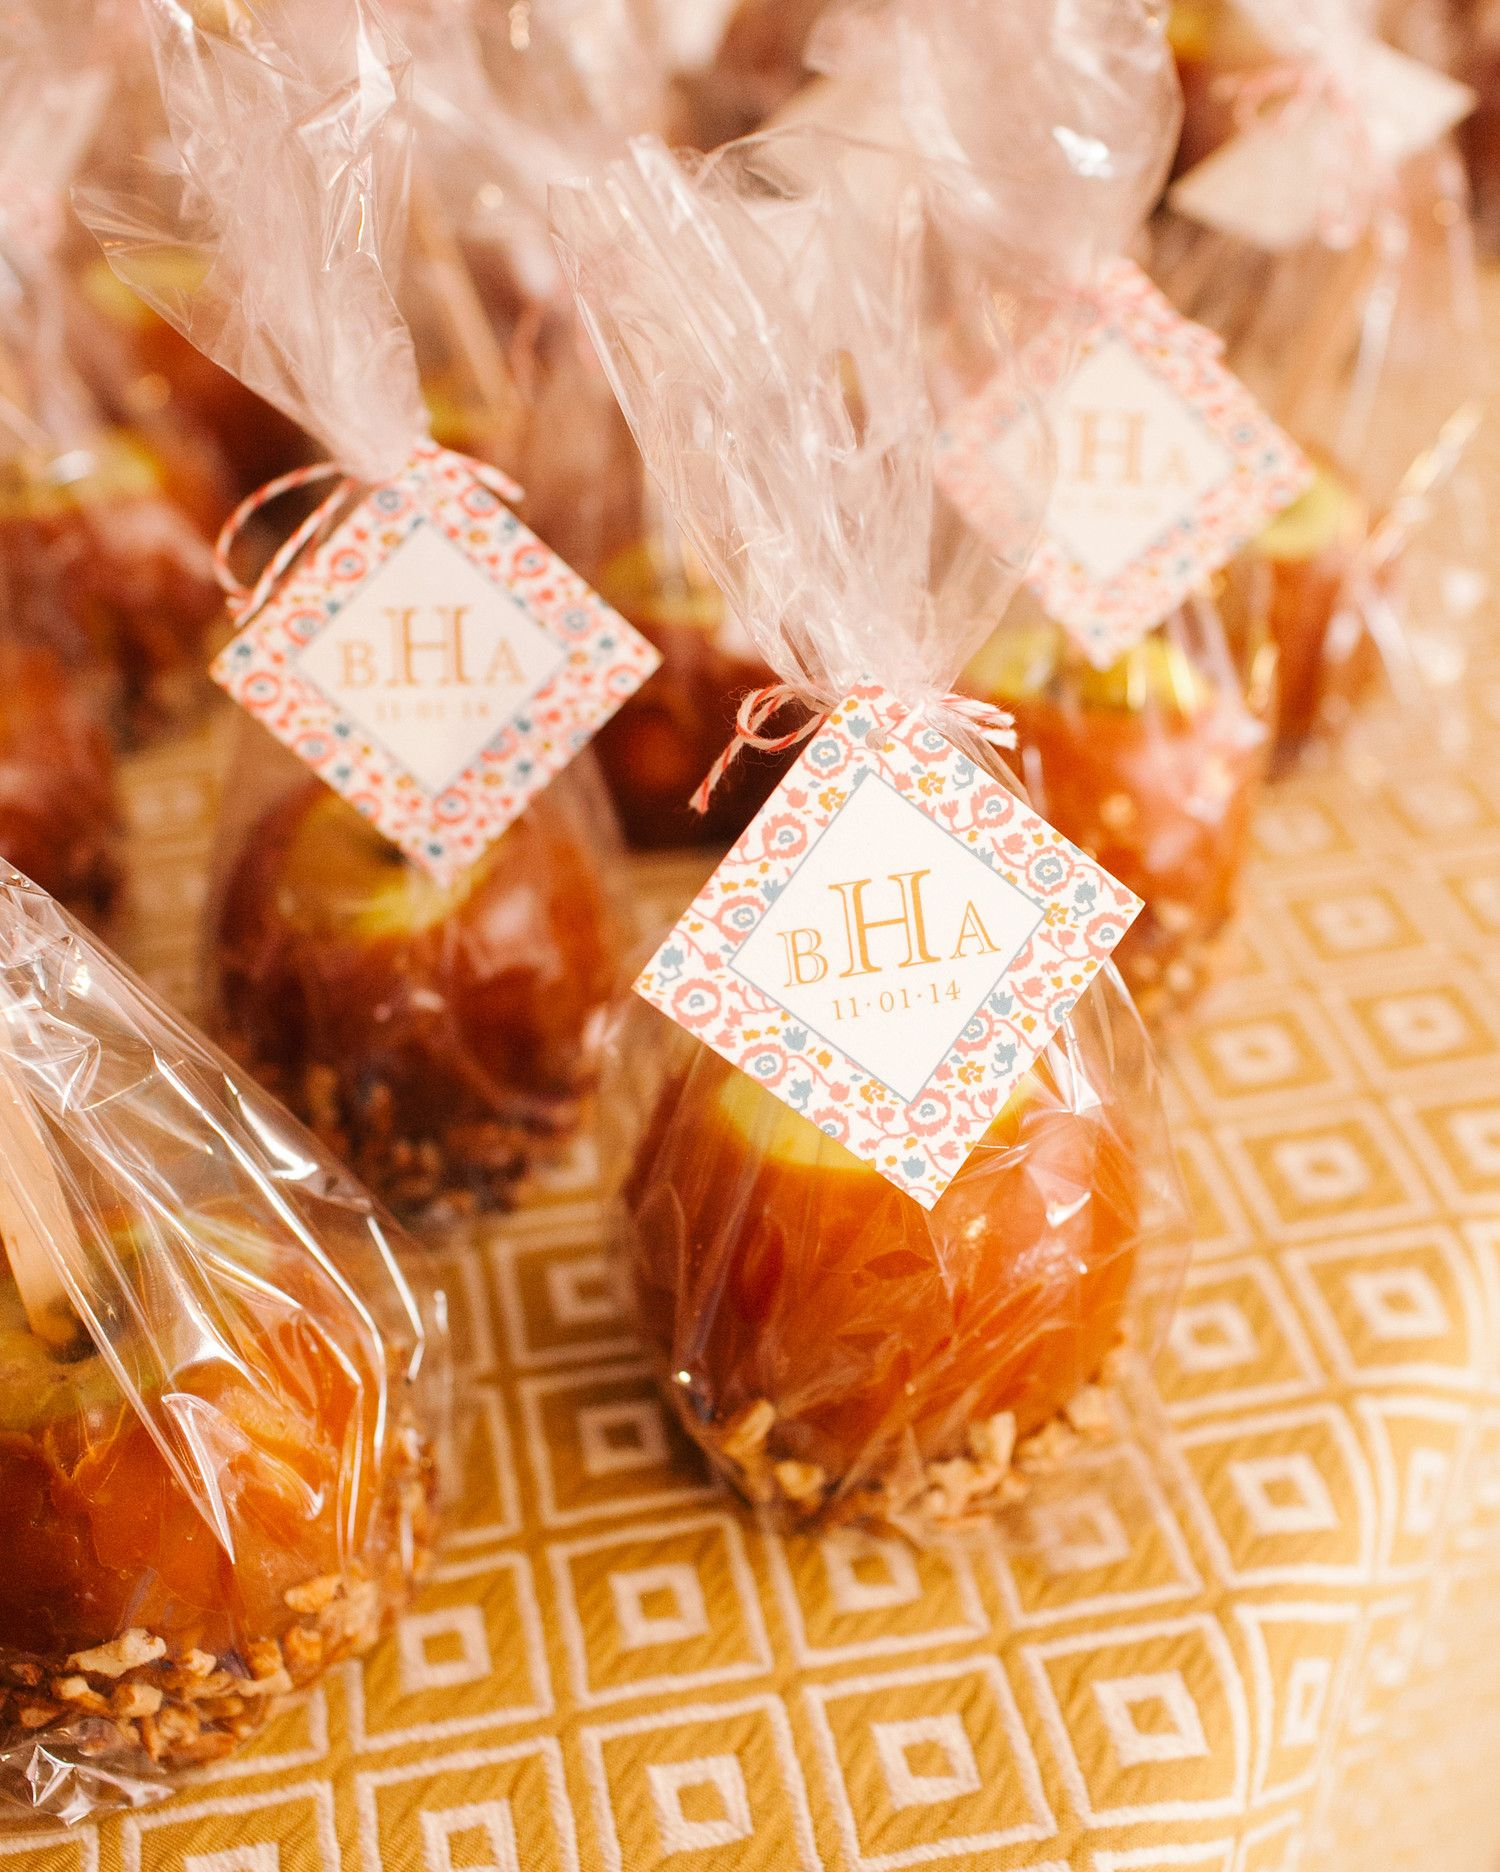 Guests At This Fall Wedding Went Home With Delicious Caramel Apples